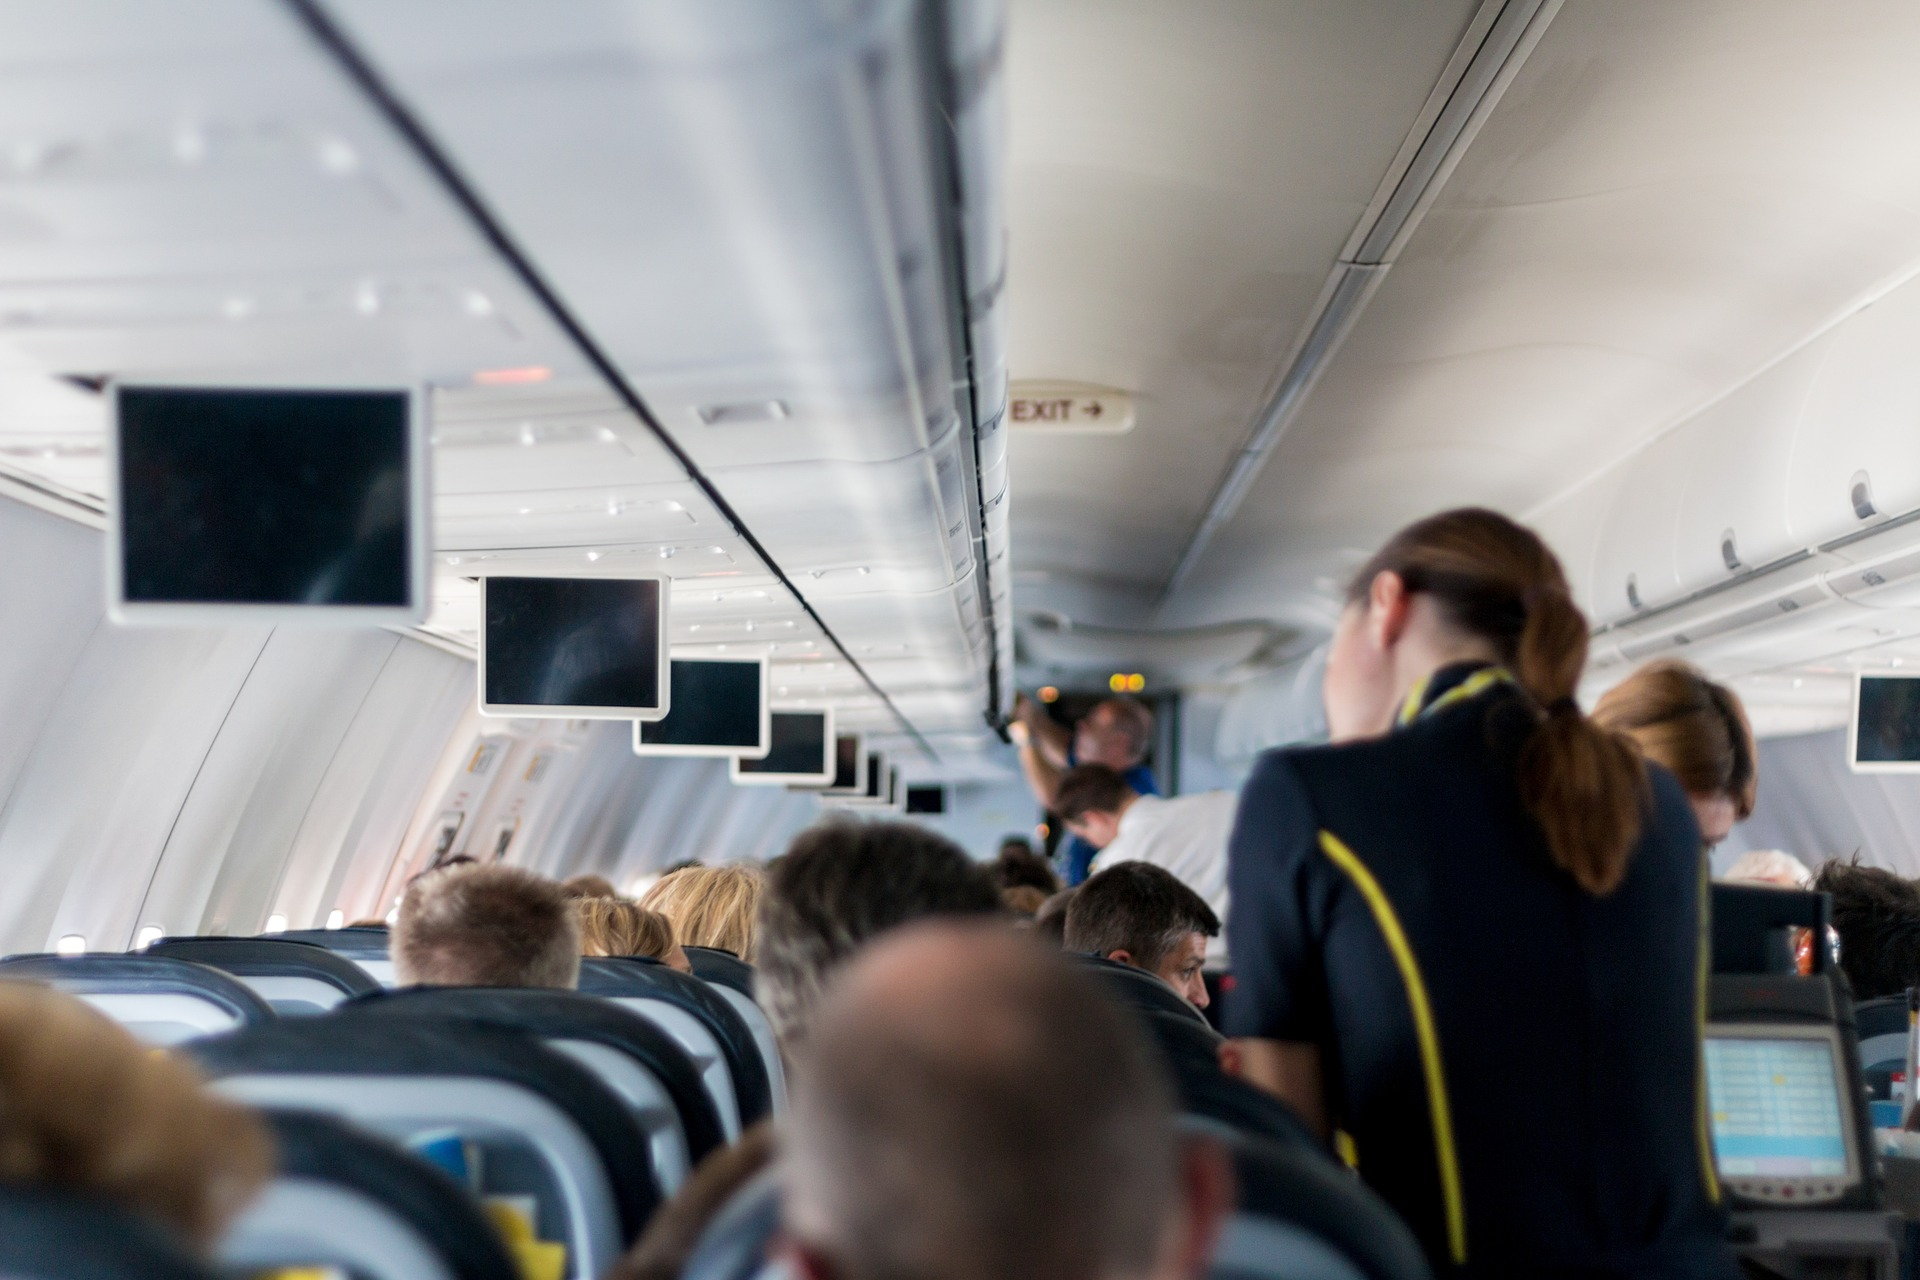 Romania, Bulgaria offer lowest fares for low-cost short-haul flights among 80 countries